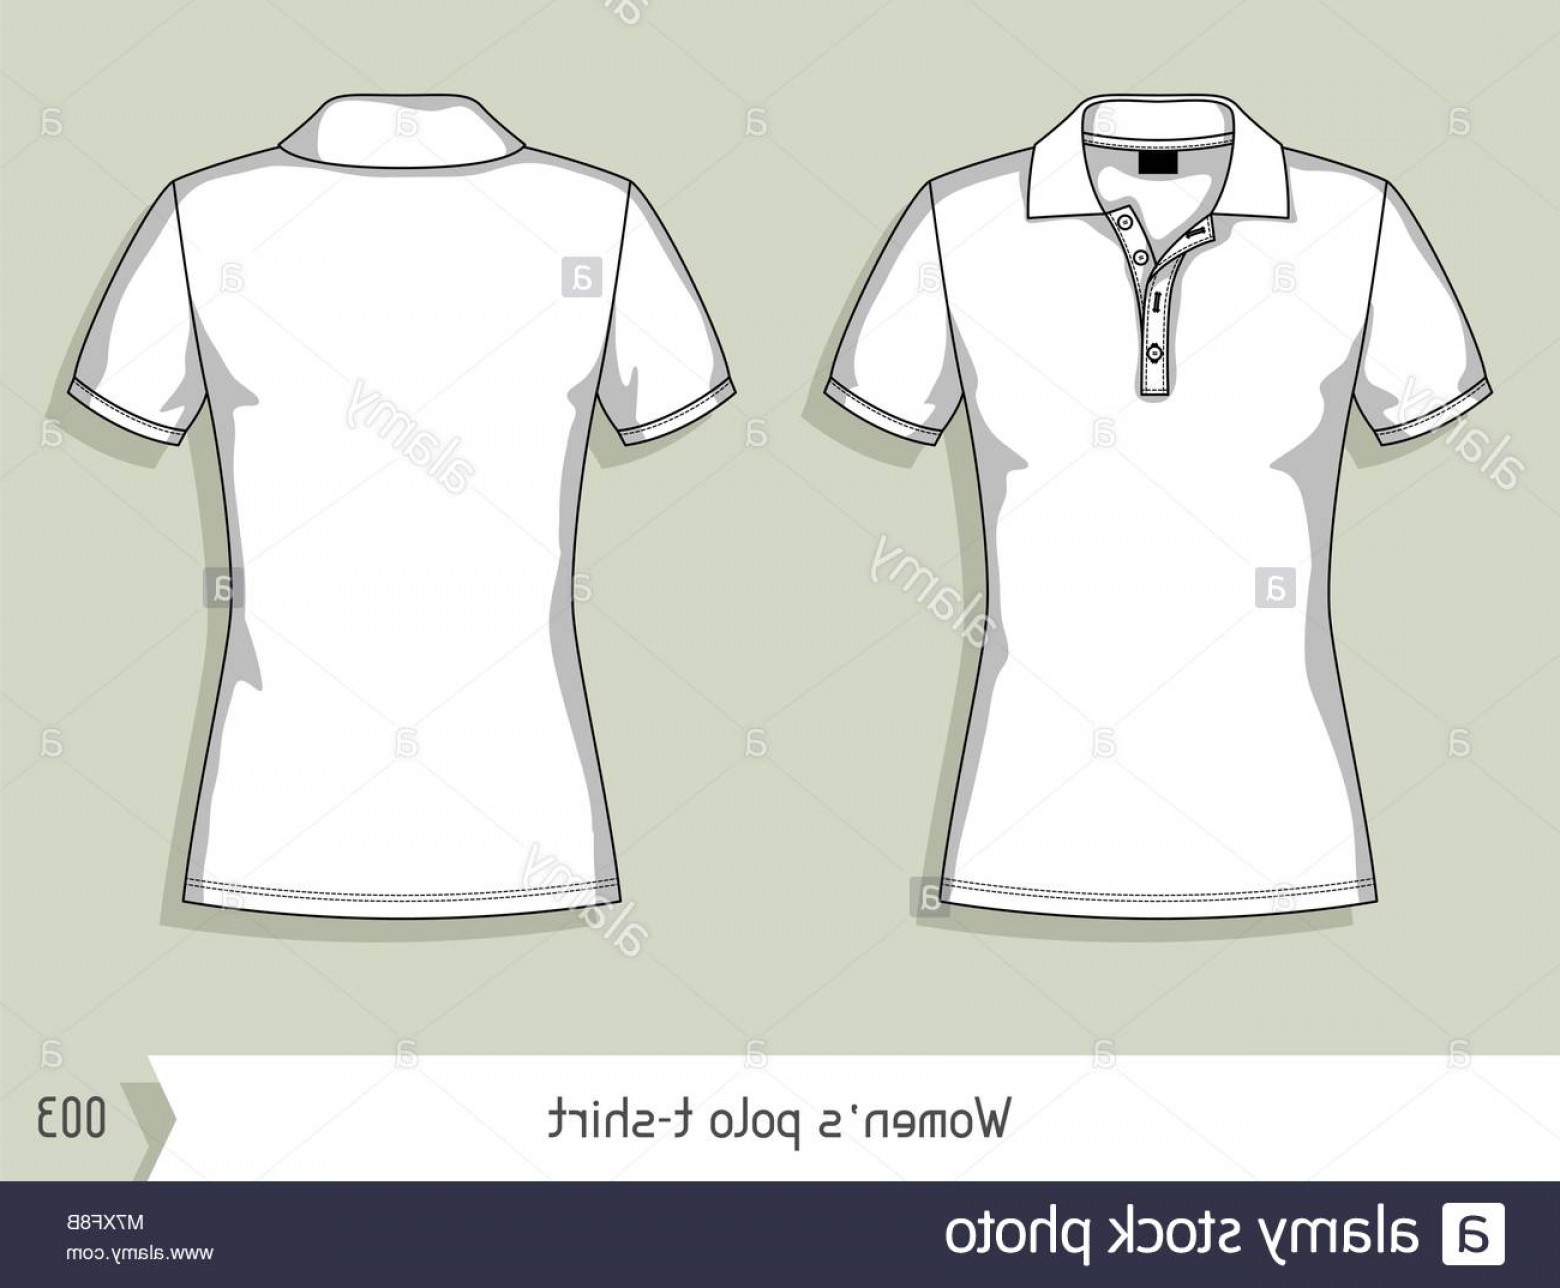 Female Polo Shirt Vector Template: Stock Photo Women Polo T Shirt Template For Design Easily Editable By Layers